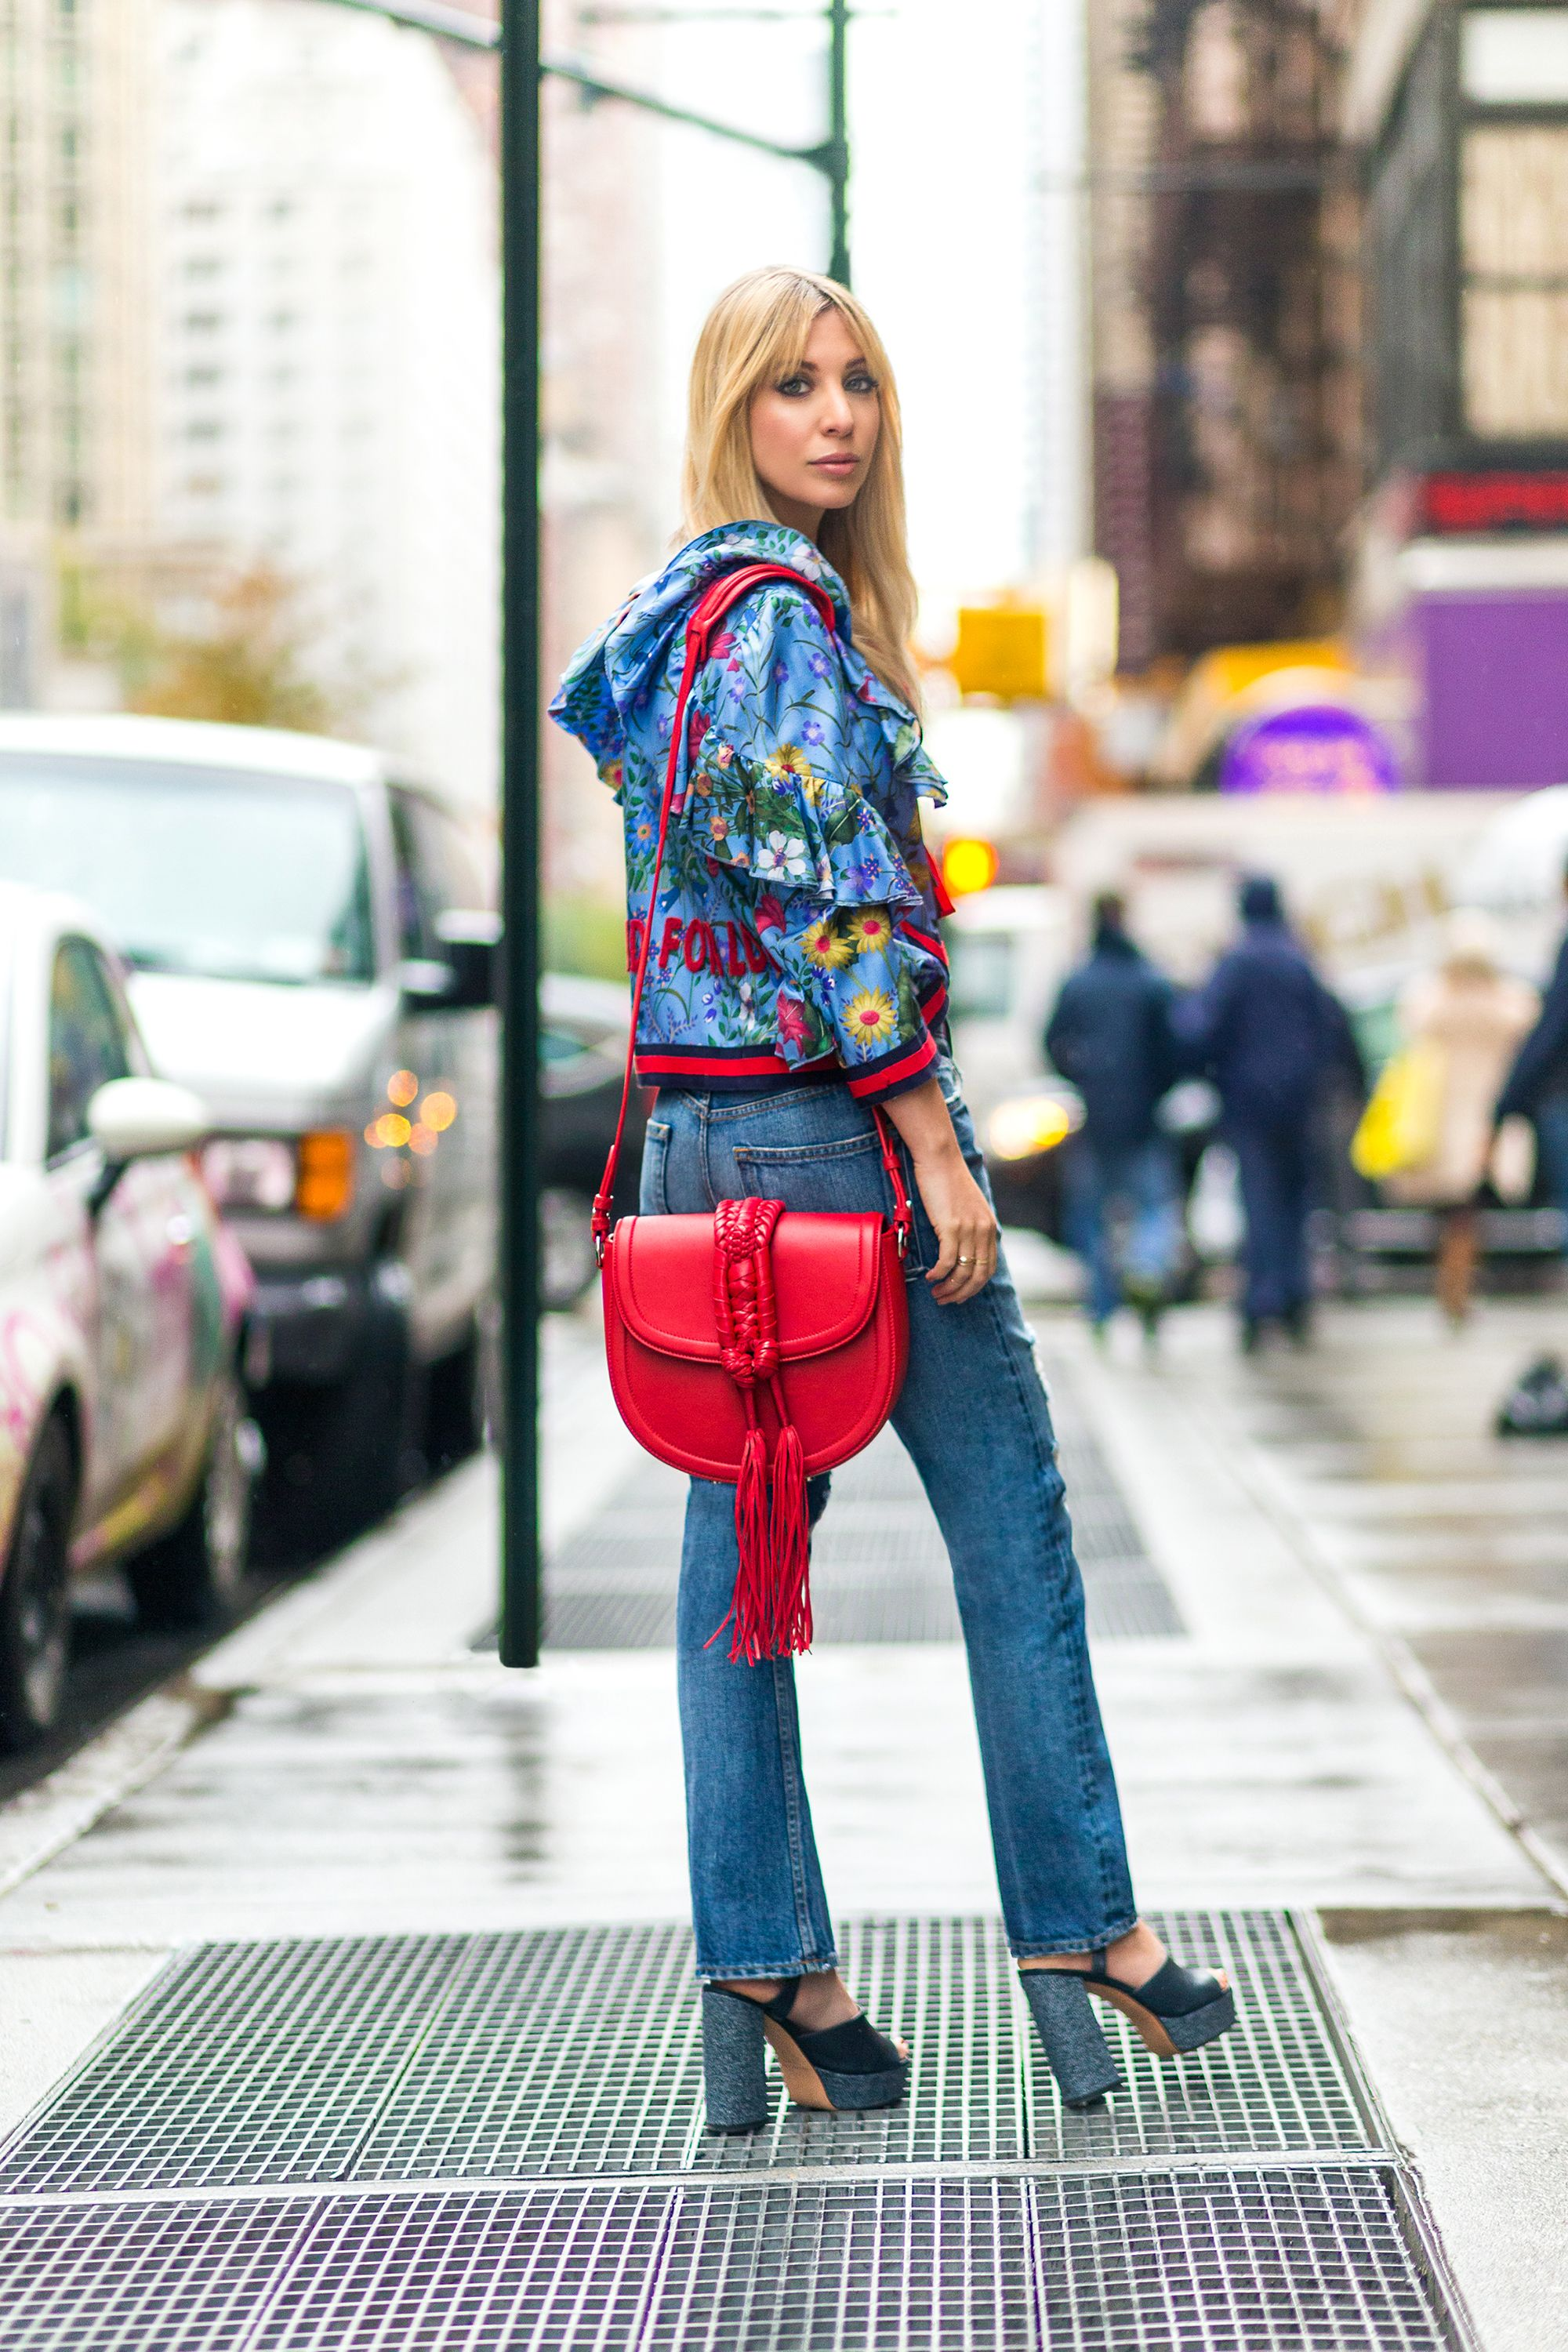 "<p>""Red is definitely the color for now—it pairs perfectly with blue denim—especially on a bag that's as structured and beautiful as this one. I consider a Gucci floral top icing on the stylish cake.""<br><br><em data-redactor-tag=""em"" data-verified=""redactor""><strong data-redactor-tag=""strong"" data-verified=""redactor"">Kerry wears: </strong>Gucci jacket, $4,100, <a href=""https://shop.harpersbazaar.com/designers/gucci/gucci-boxy-jacket-10752.html"" target=""_blank"" data-tracking-id=""recirc-text-link""><strong data-redactor-tag=""strong"" data-verified=""redactor"">shopBAZAAR.com</strong></a>; Brock Collection jeans, $495, <strong data-redactor-tag=""strong"" data-verified=""redactor""><a href=""https://shop.harpersbazaar.com/b/brock-collection/wright-denim-jean-10477.html"" target=""_blank"" data-tracking-id=""recirc-text-link"">shopBAZAAR.com</a></strong>; Derek Lam sandals, $850, <strong data-redactor-tag=""strong"" data-verified=""redactor""><a href=""https://shop.harpersbazaar.com/designers/derek-lam/birgitta-platform-sandal-denim-10754.html"" target=""_blank"" data-tracking-id=""recirc-text-link"">shopBAZAAR.com</a></strong>; Altuzarra <em data-redactor-tag=""em""><em data-redactor-tag=""em"">bag</em></em><span class=""redactor-invisible-space""></span>, $2,195, <strong data-redactor-tag=""strong"" data-verified=""redactor""><a href=""https://shop.harpersbazaar.com/a/altuzarra/ghianda-saddle-knot-bag-red-10484.html"" target=""_blank"" data-tracking-id=""recirc-text-link"">shopBAZAAR.com</a></strong>. </em><span class=""redactor-invisible-space"" data-verified=""redactor"" data-redactor-tag=""span"" data-redactor-class=""redactor-invisible-space""><em data-redactor-tag=""em"" data-verified=""redactor""></em></span></p>"